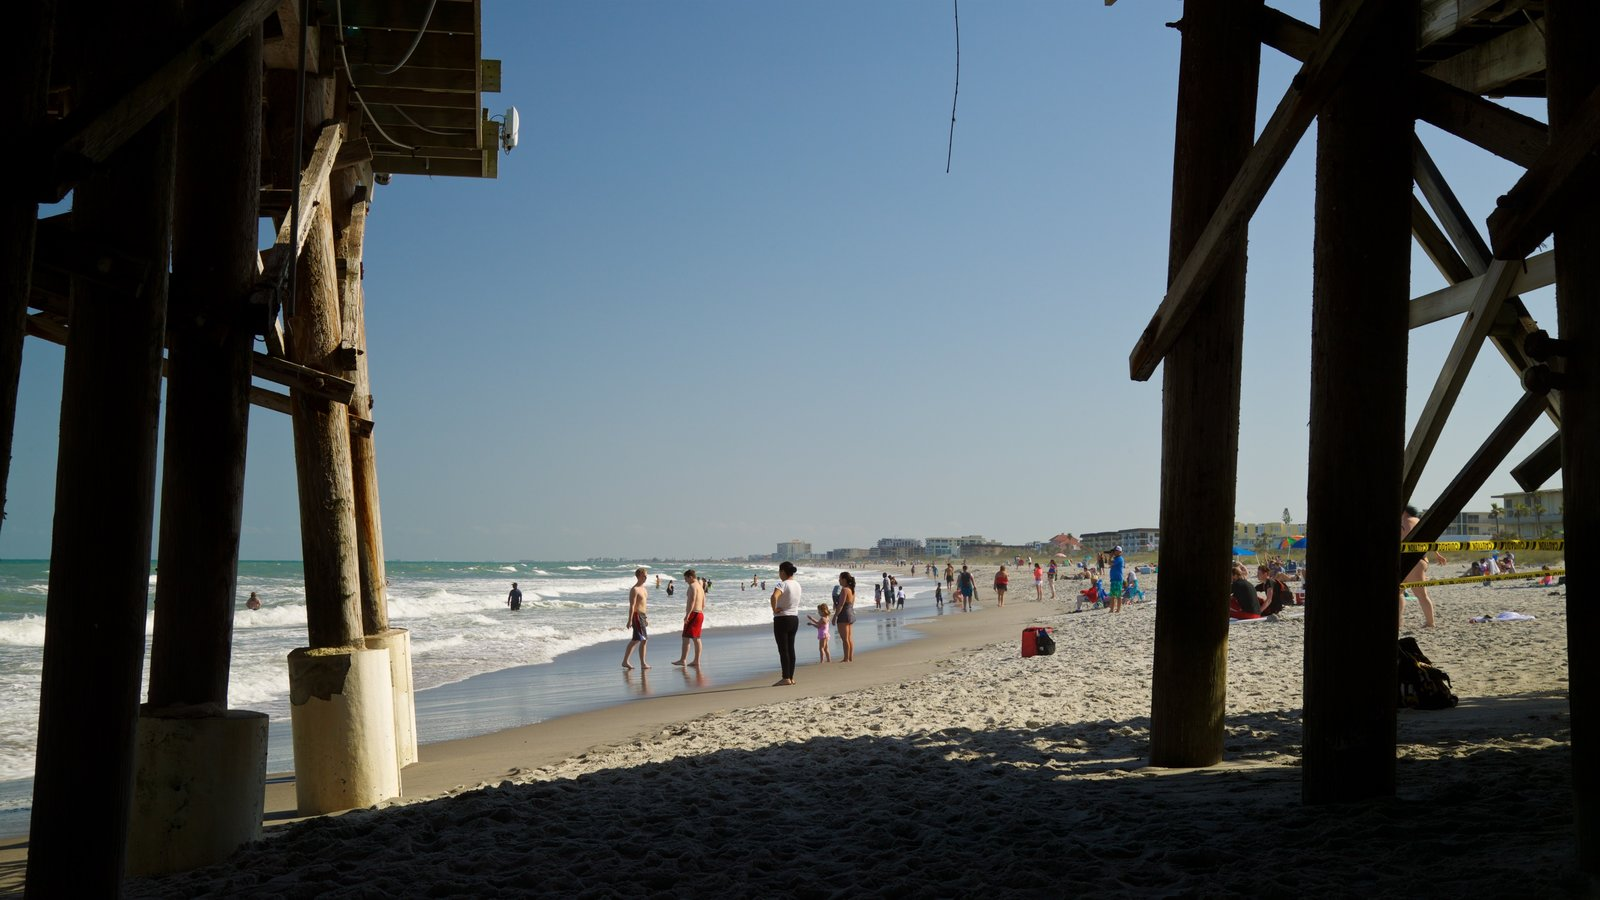 Cocoa Beach Pier showing a beach and general coastal views as well as a small group of people